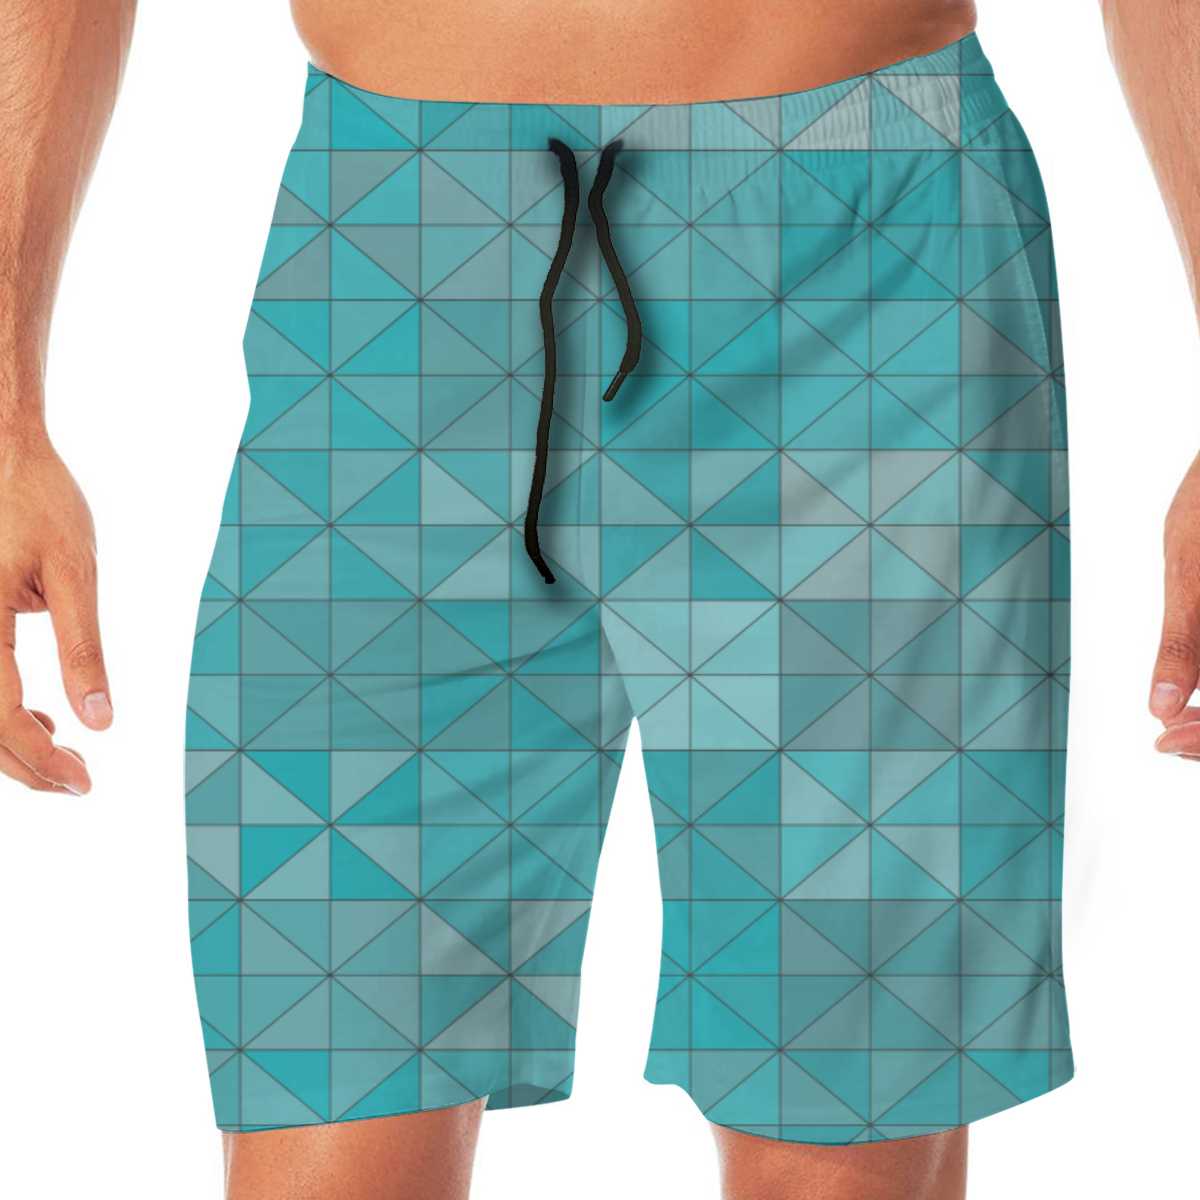 Blue Tile Men's Beach Pants Quick Drying Beach Shorts Swimming Surfing Boating Water Sports Trunks Loose Swimwear Shorts